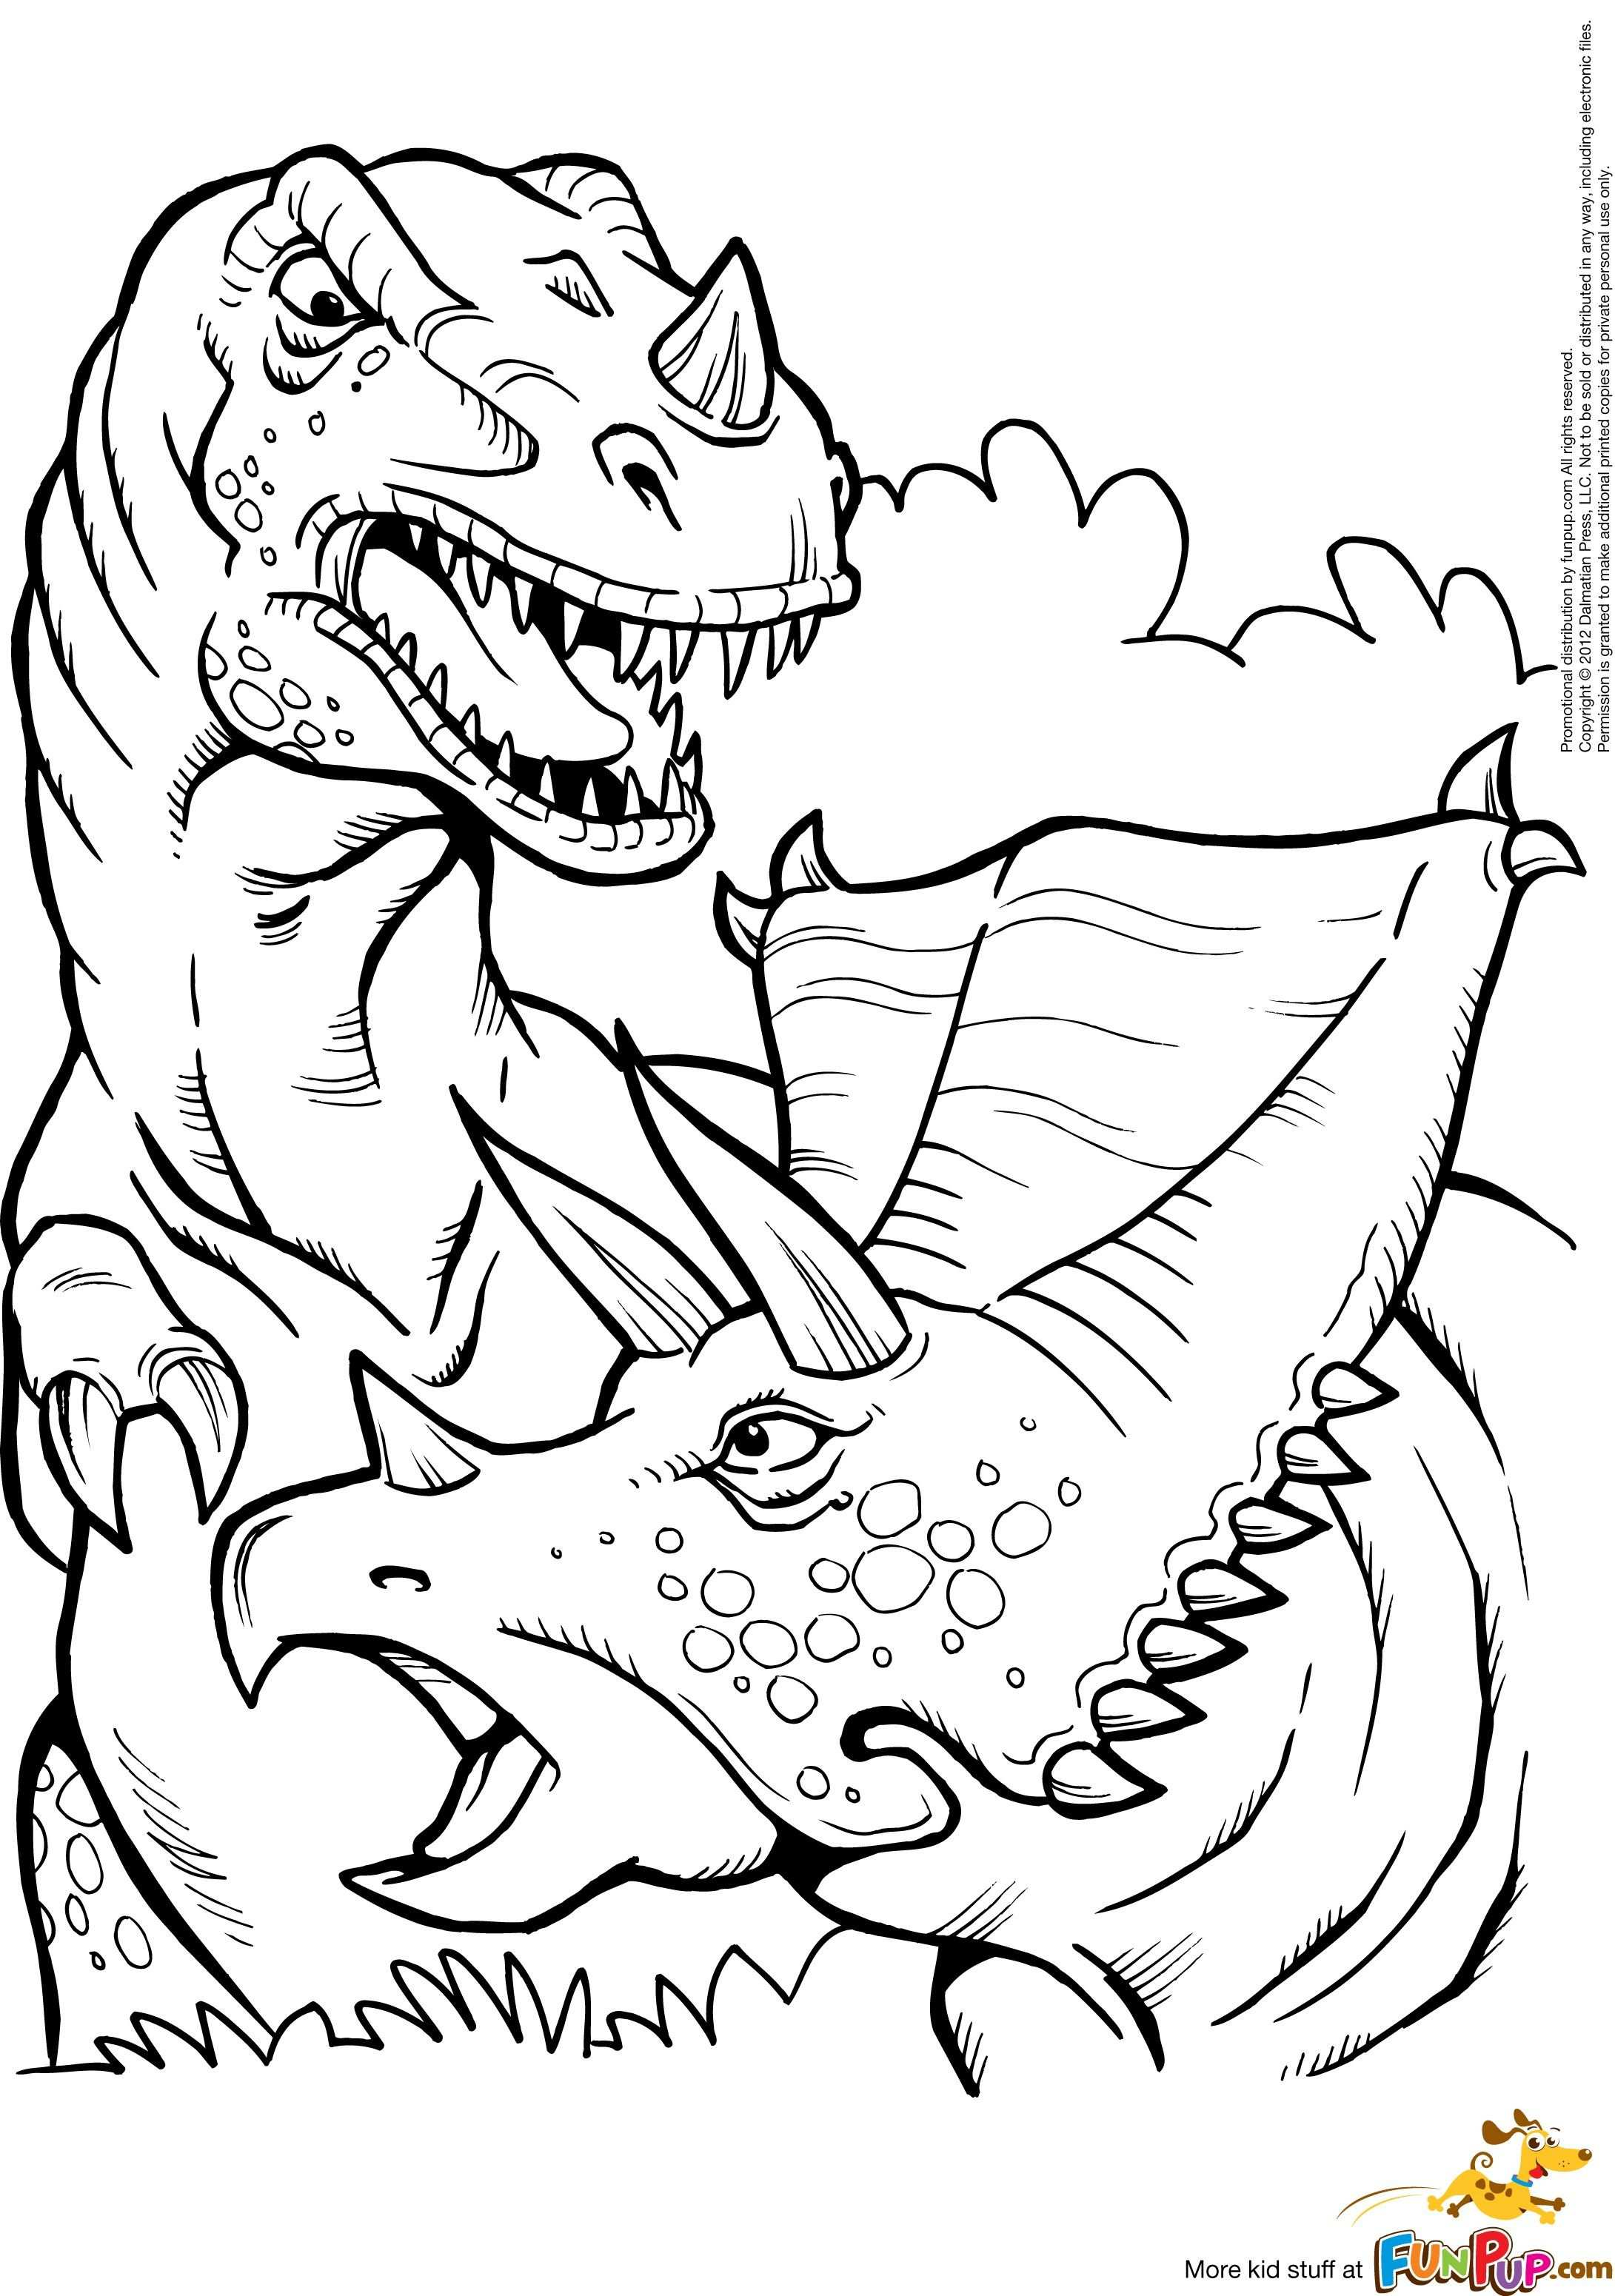 T Rex And Triceratops 0 00 Dinosaur Coloring Pages Dinosaur